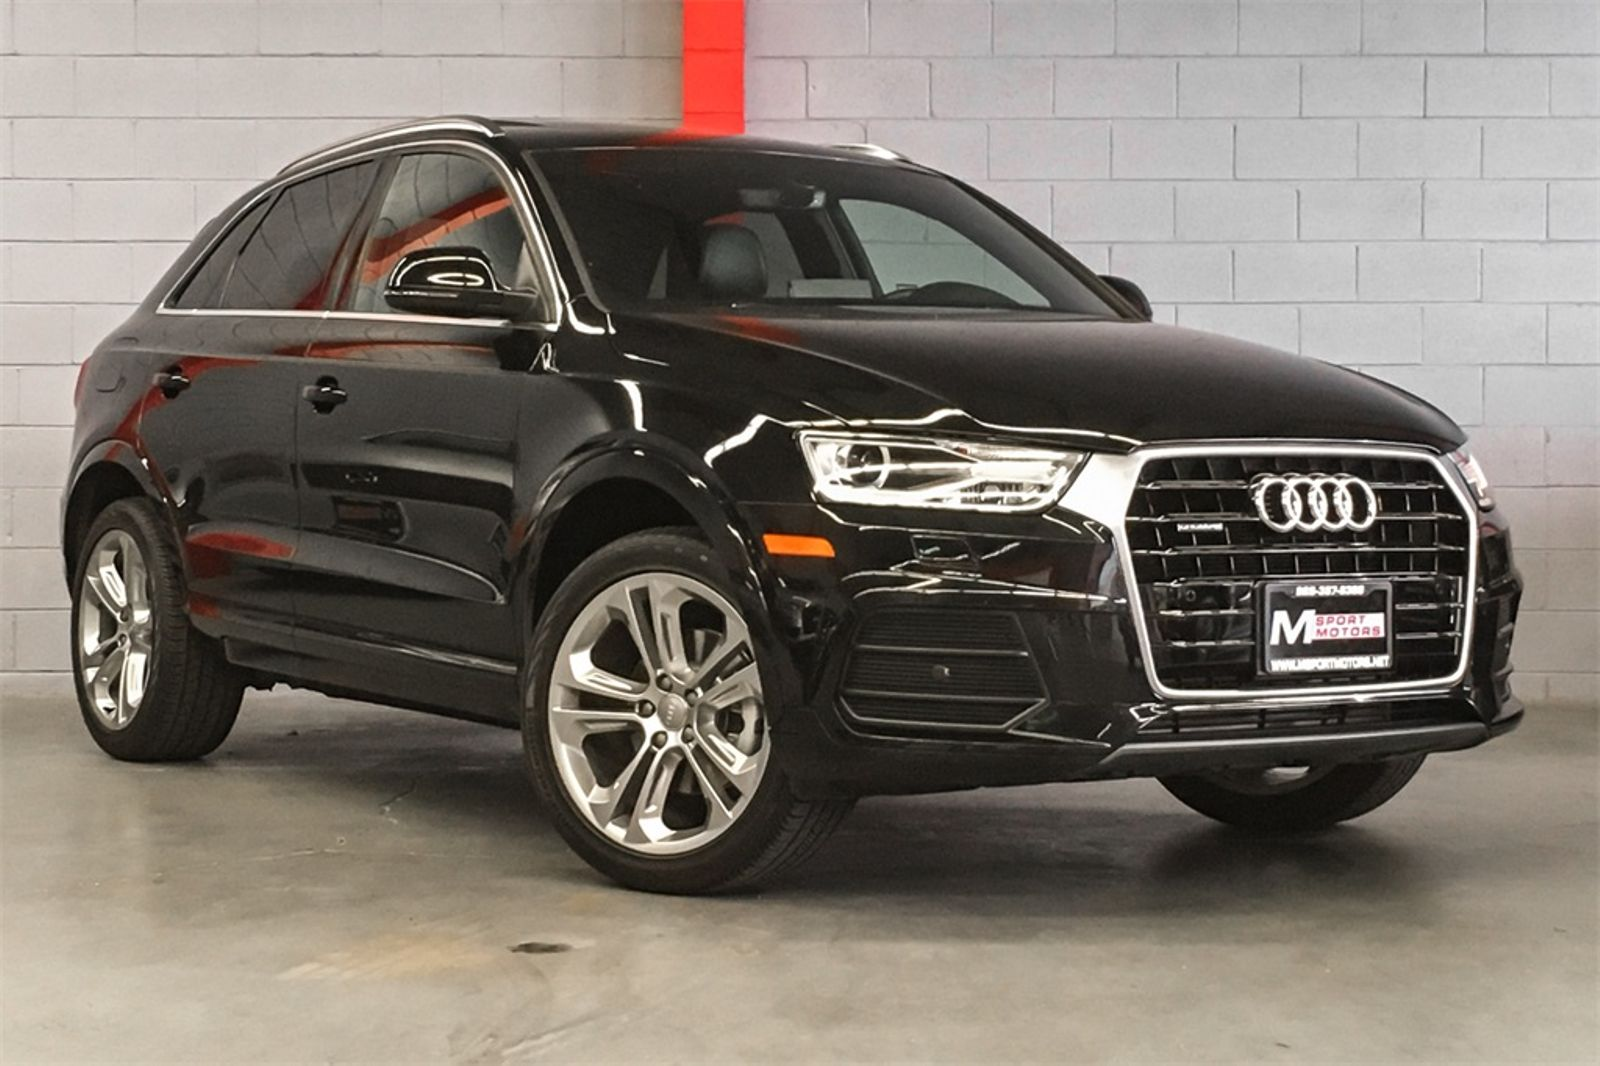 audi jeep 2015 28 images 2015 audi q7 suv reviews photos video and price q7 suv 100 audi. Black Bedroom Furniture Sets. Home Design Ideas